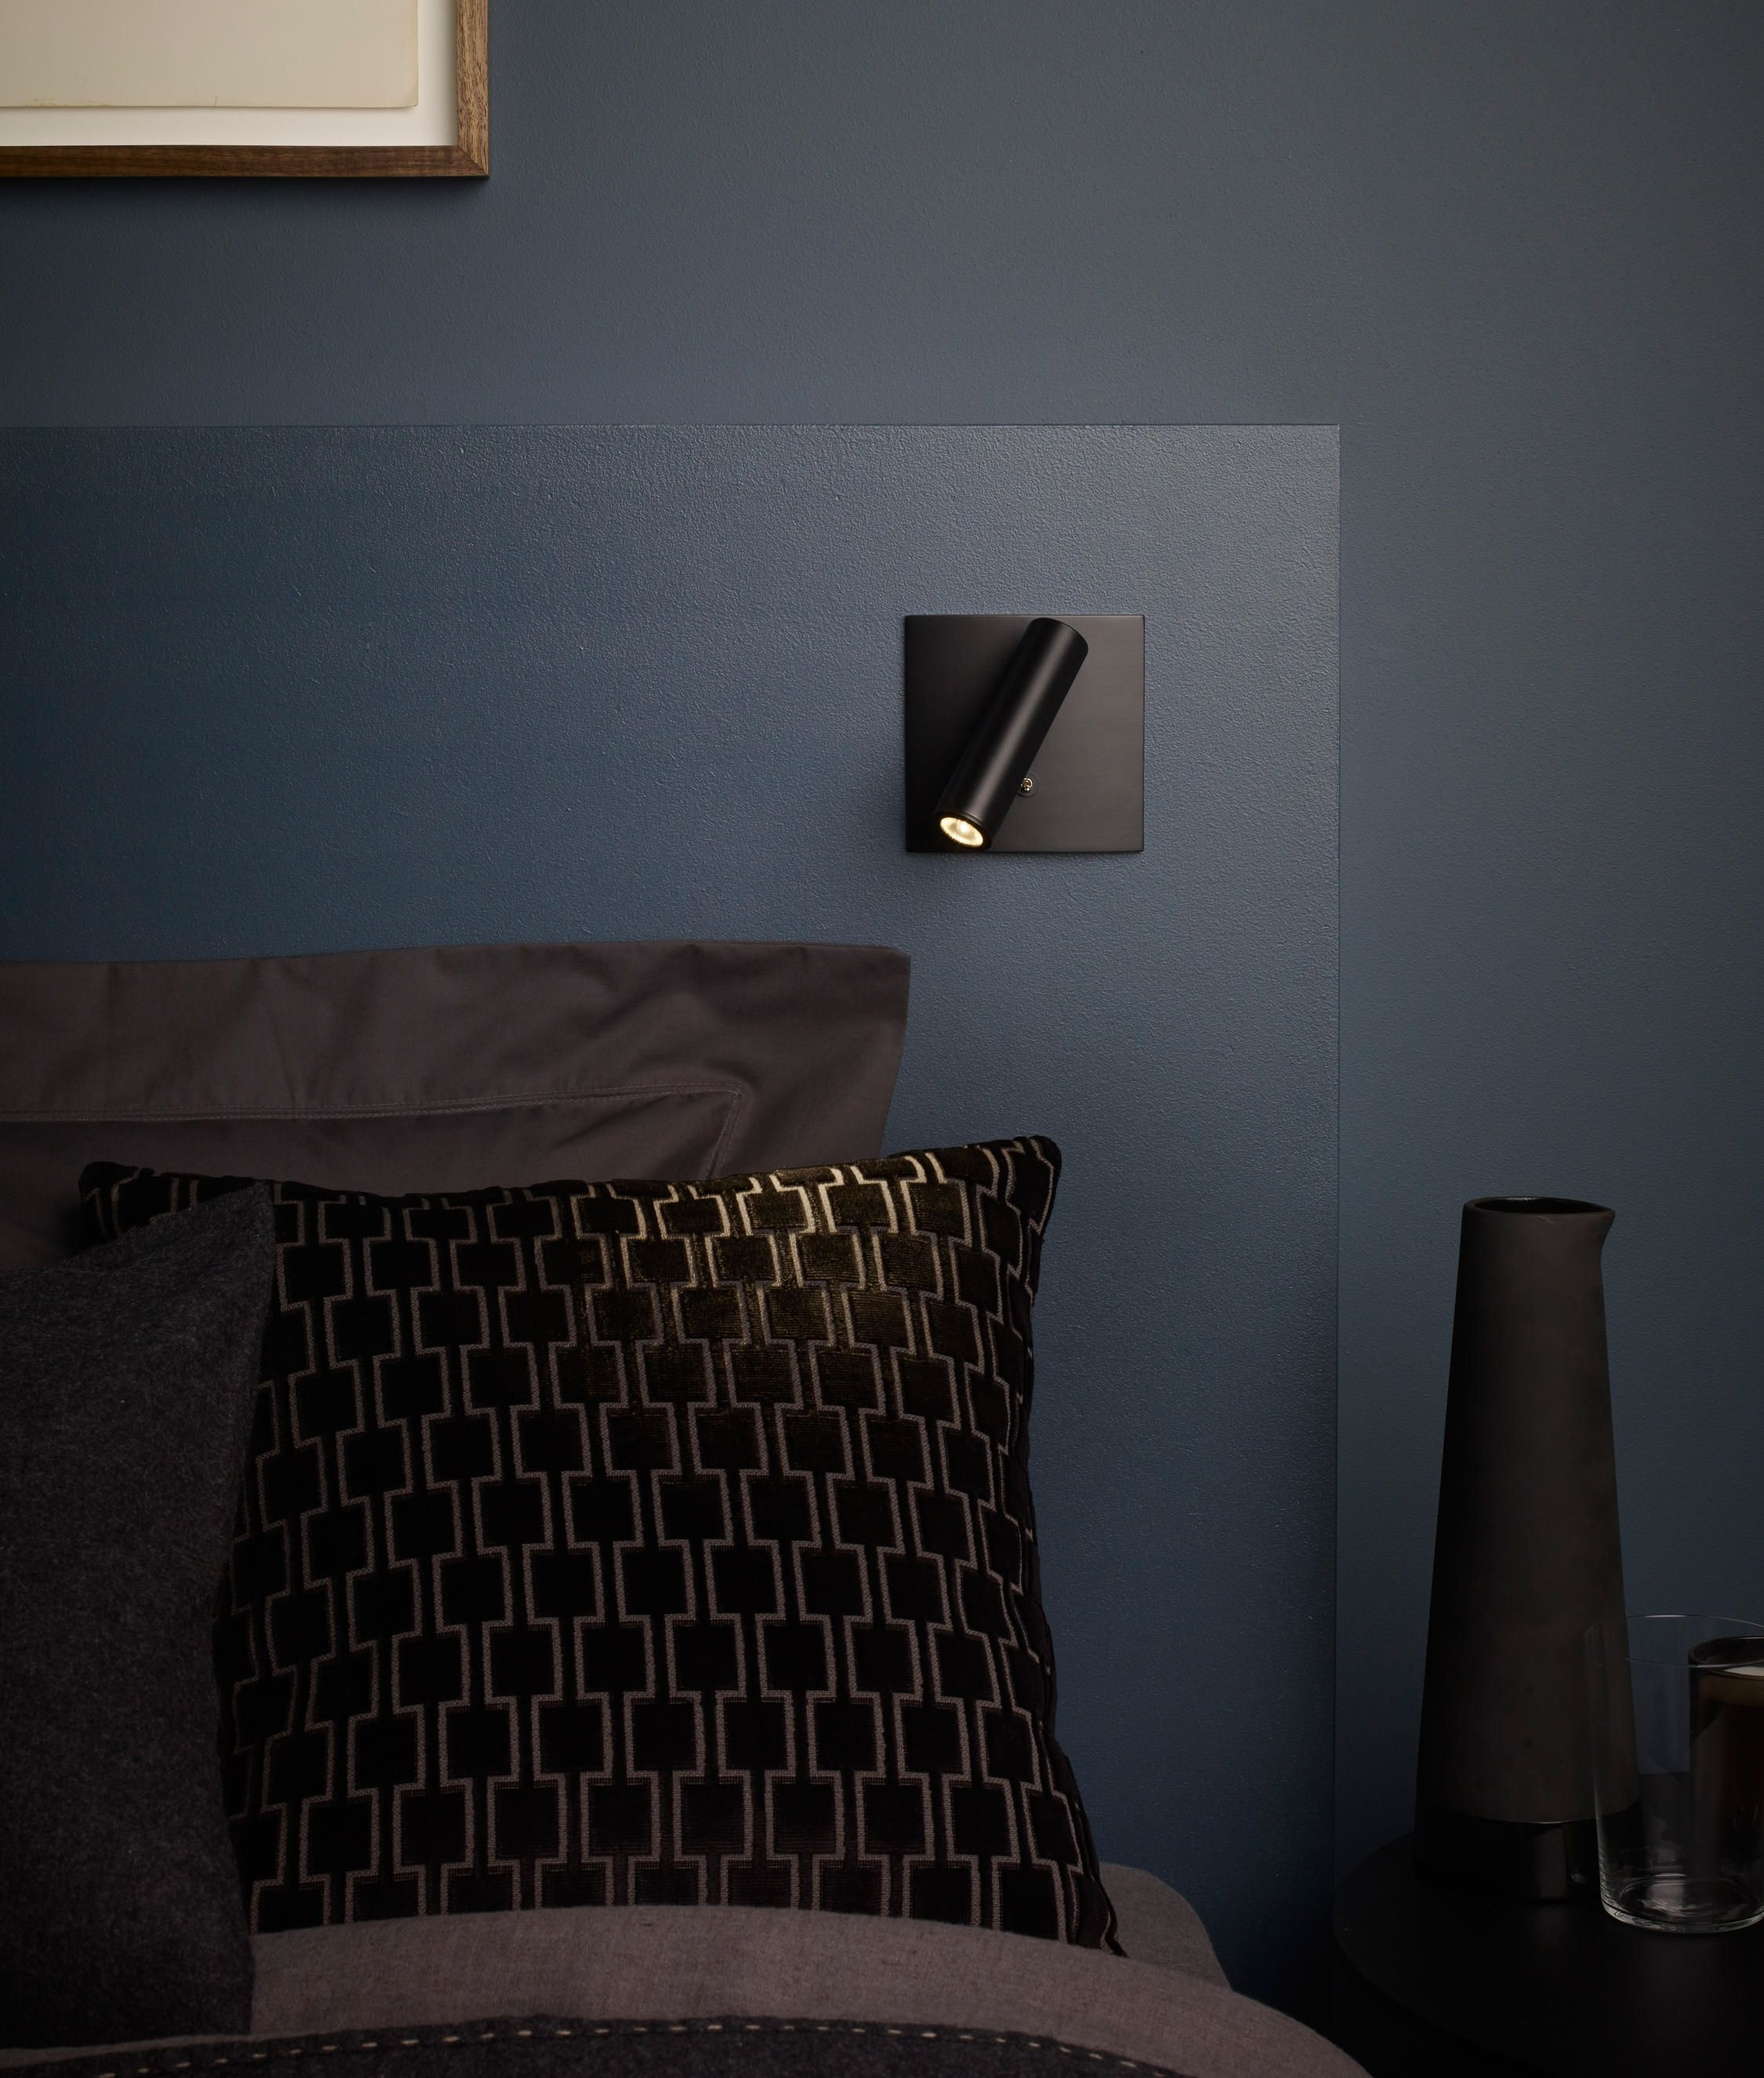 Wall Mounted Bedside Lights With Switch